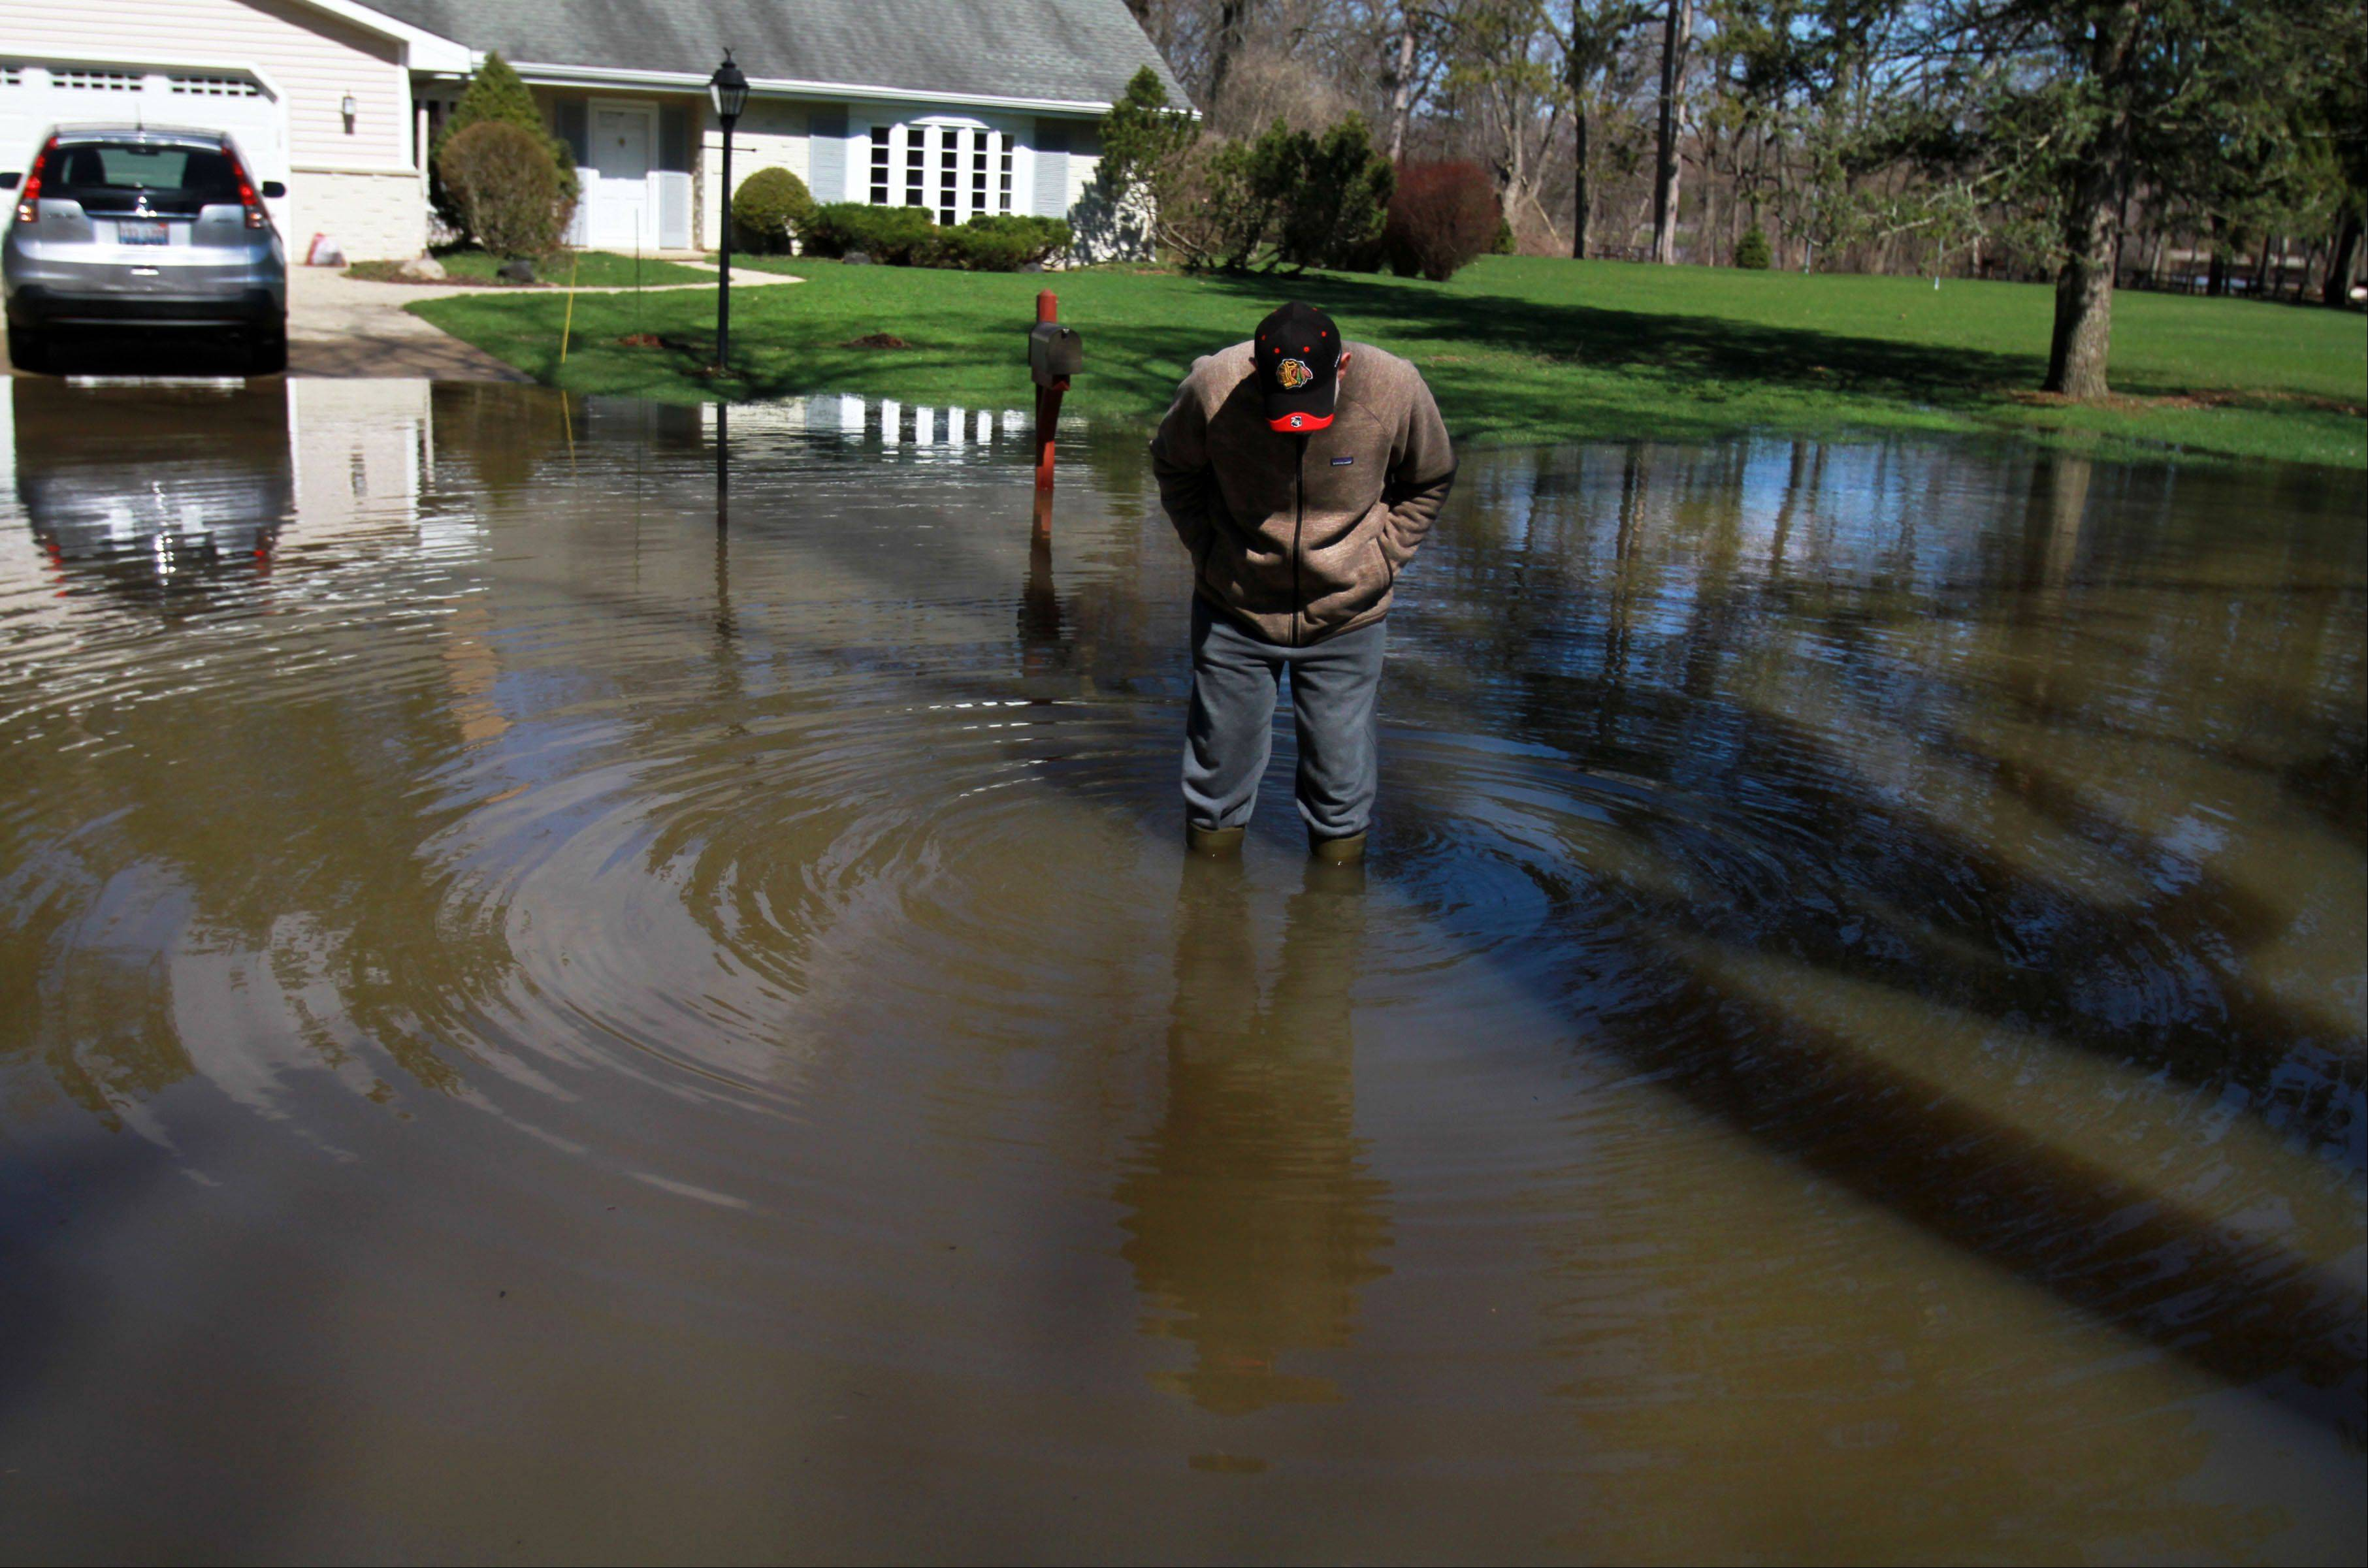 Rich Sanders checks the level of the water on his boots and decides to walk back to his house on Lincolnshire Way in Lincolnshire. Sanders wanted to checking the water level at the end of the block but turning back on Saturday, April 20, 2013. Rich said his house did not get any water.